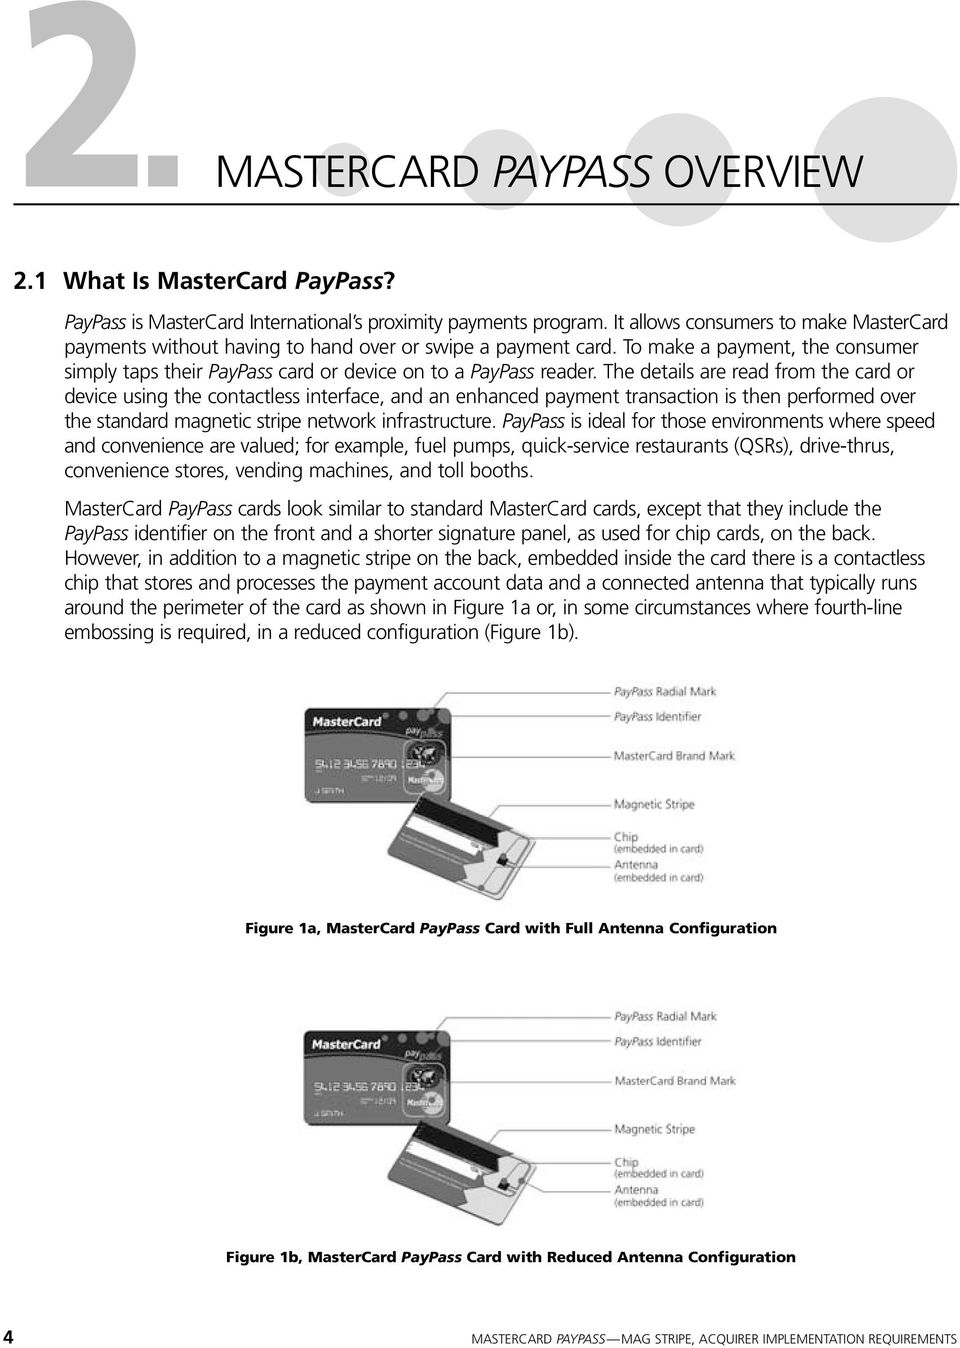 The details are read from the card or device using the contactless interface, and an enhanced payment transaction is then performed over the standard magnetic stripe network infrastructure.